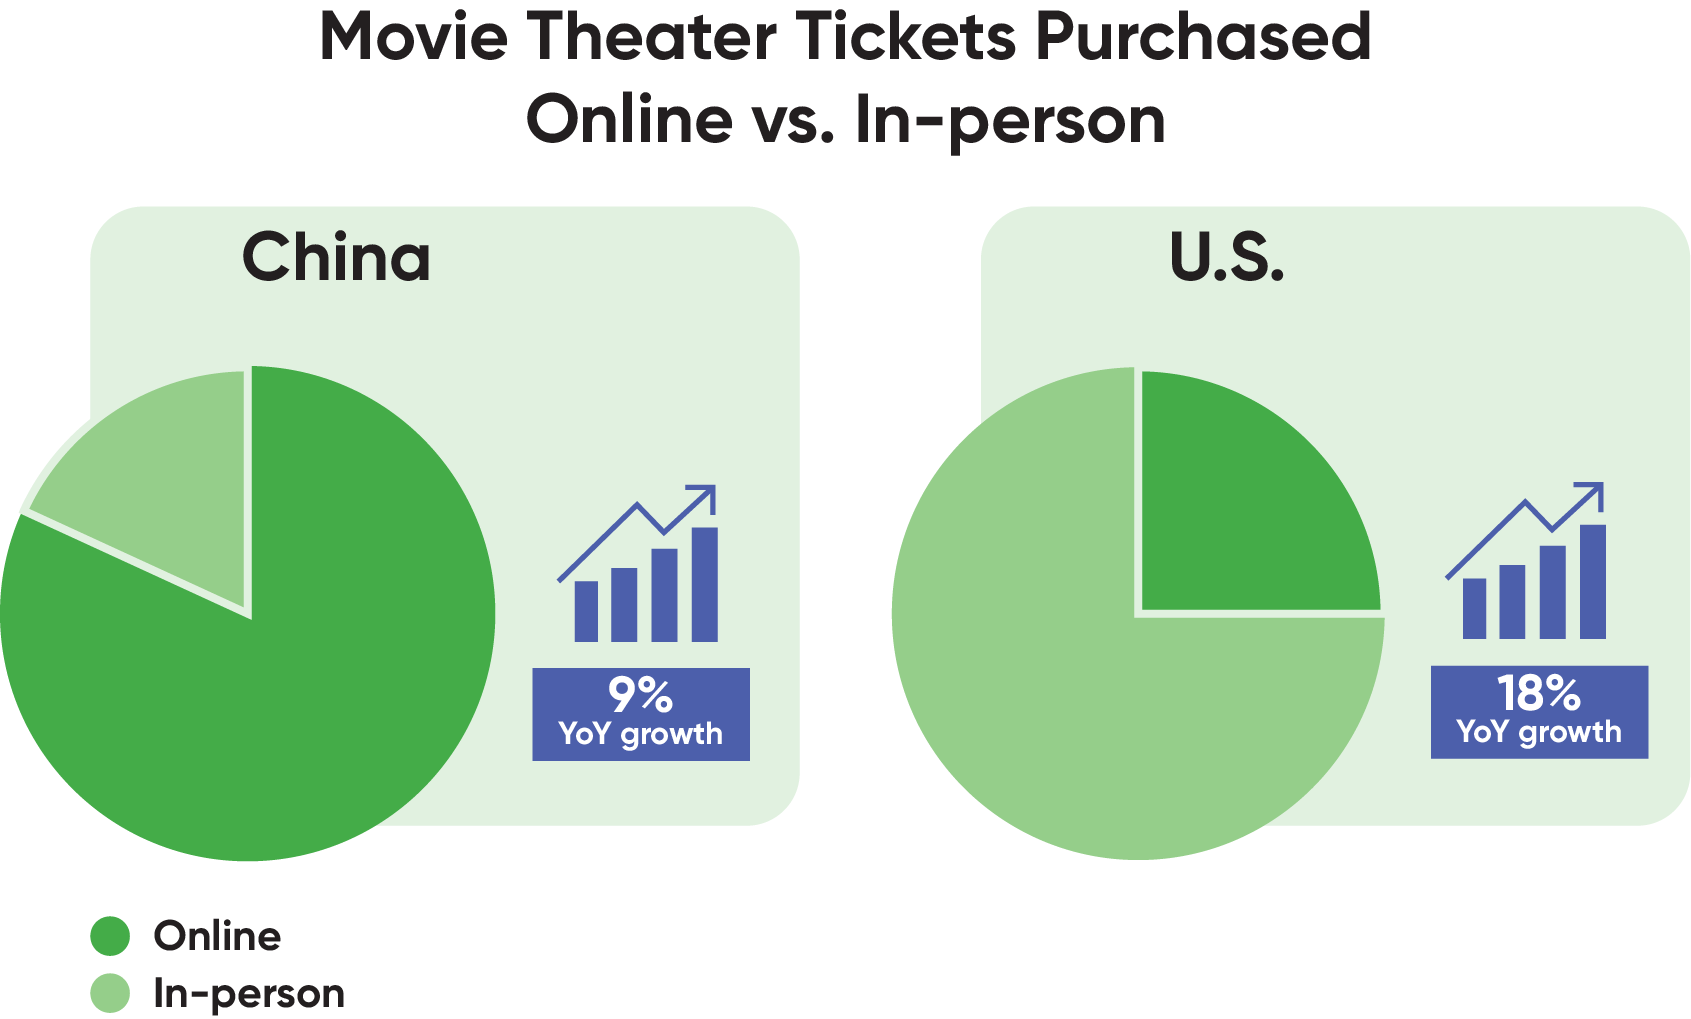 chart of movie theater tickets purchased online in China and the U.S.